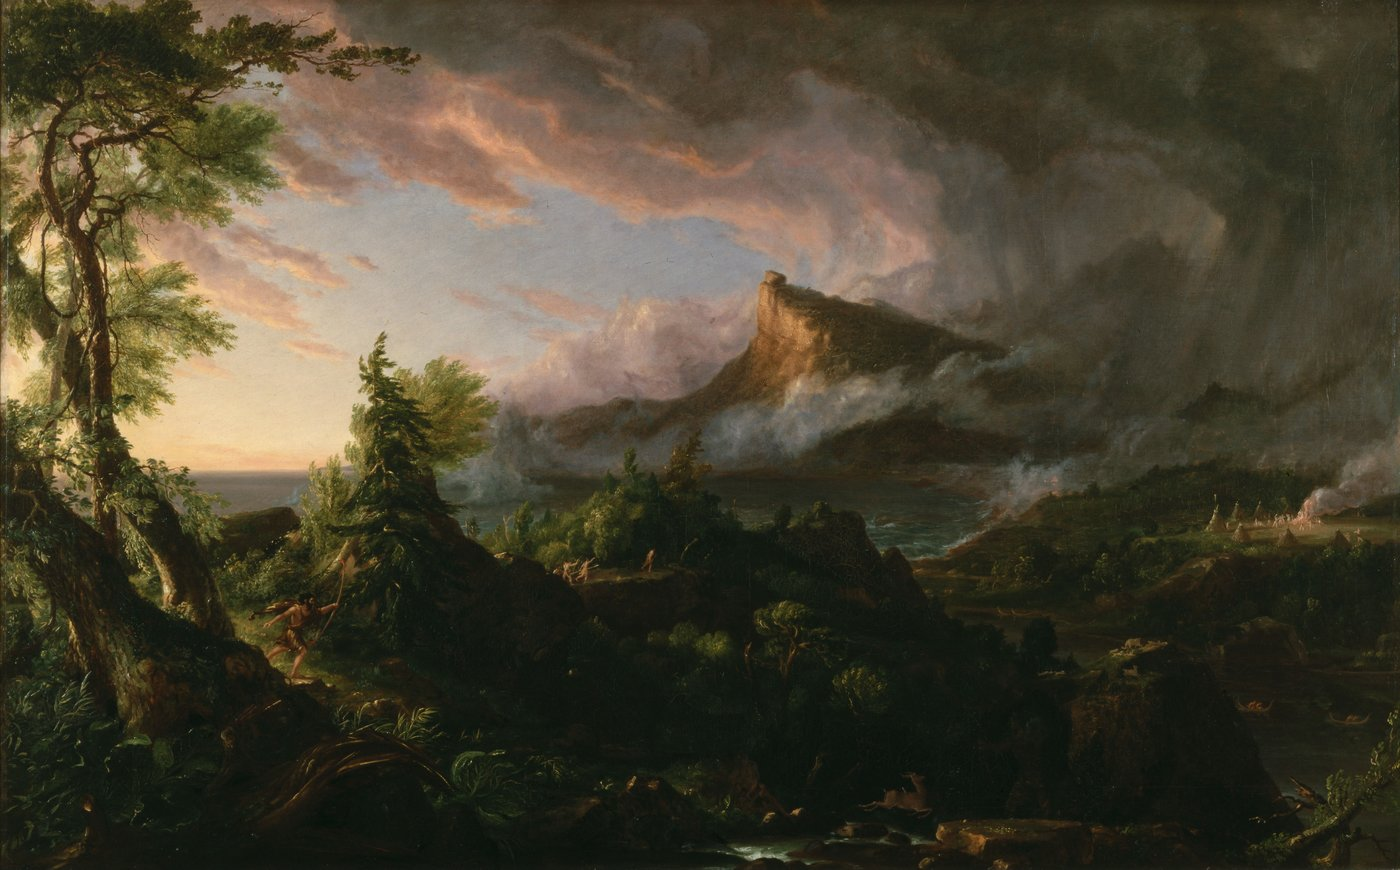 Thomas Cole background